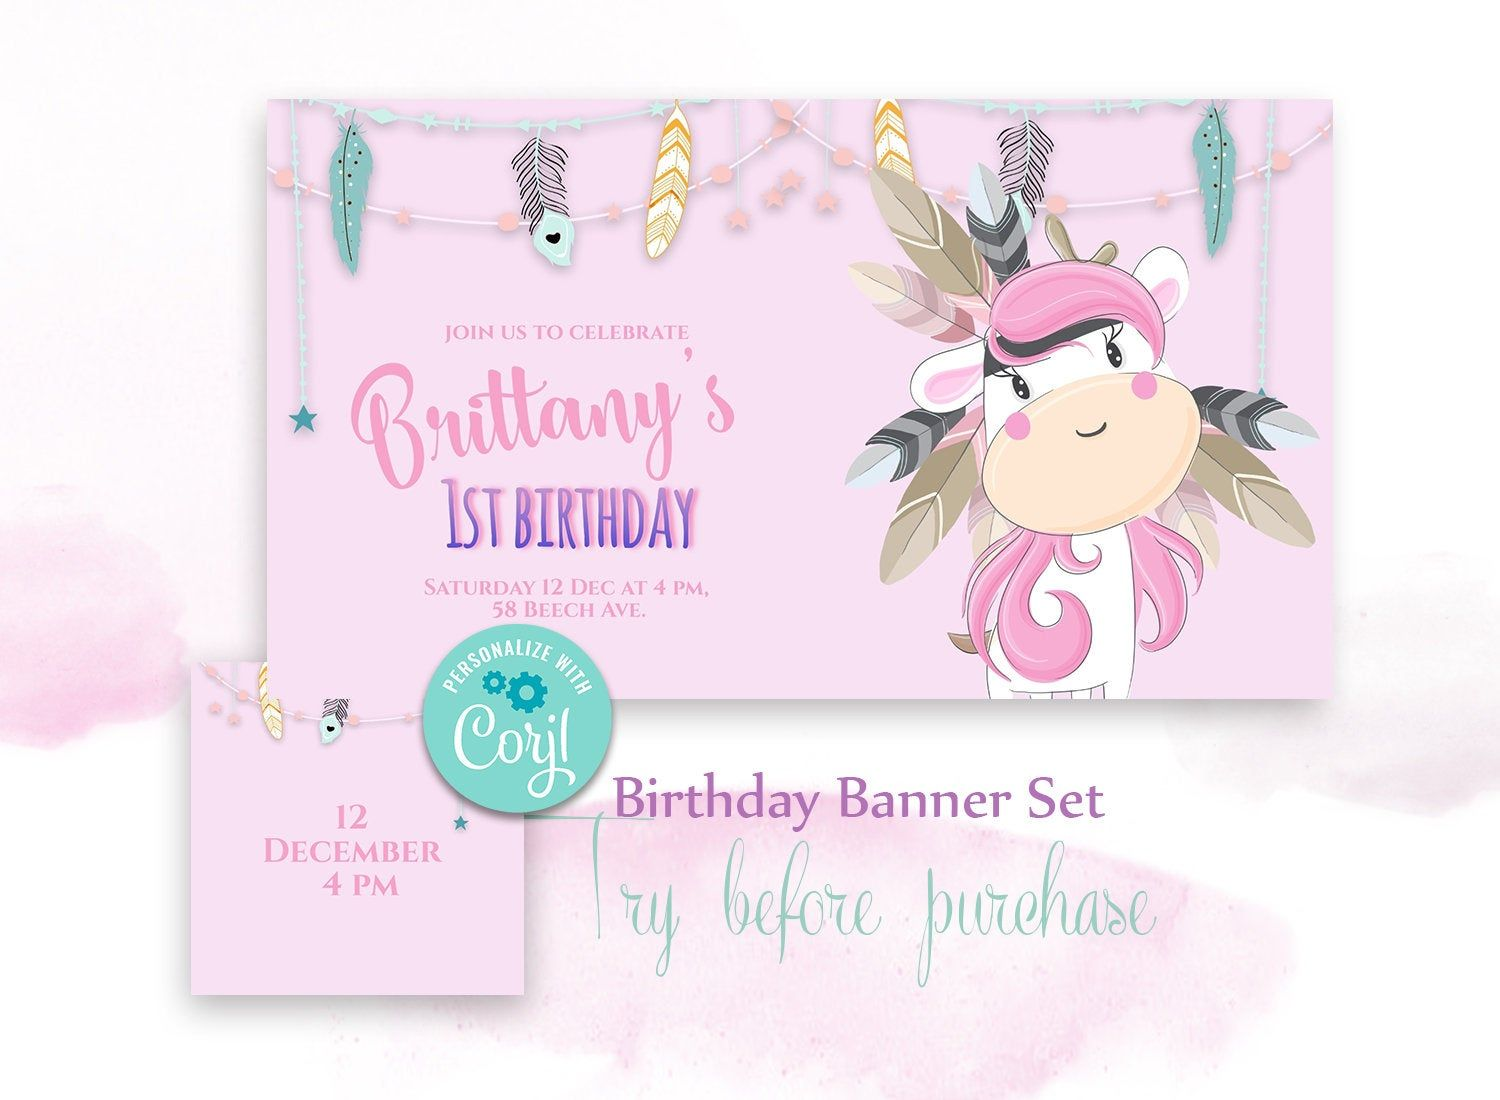 Editable Facebook Event Cover And Profile Image Birthday Invitation Banner Set Baby Girl Electronic Invite With Cute Deer With Images Invitation Banner Electronic Invitations Birthday Invitations